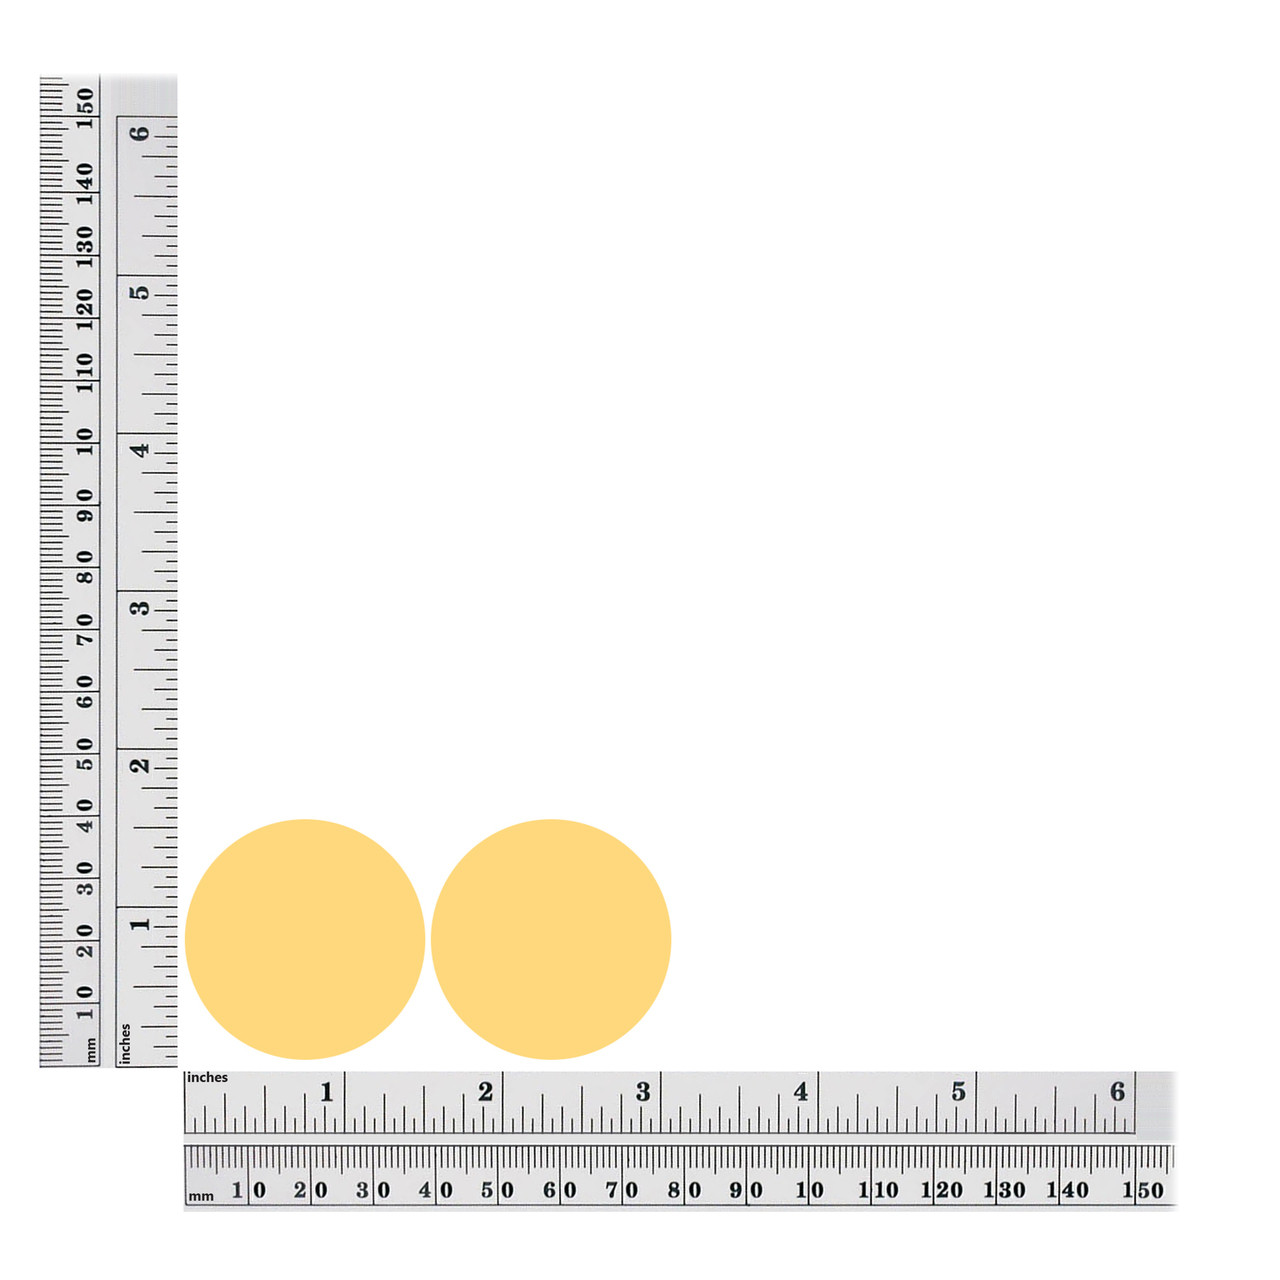 1.5 inch sequin size chart